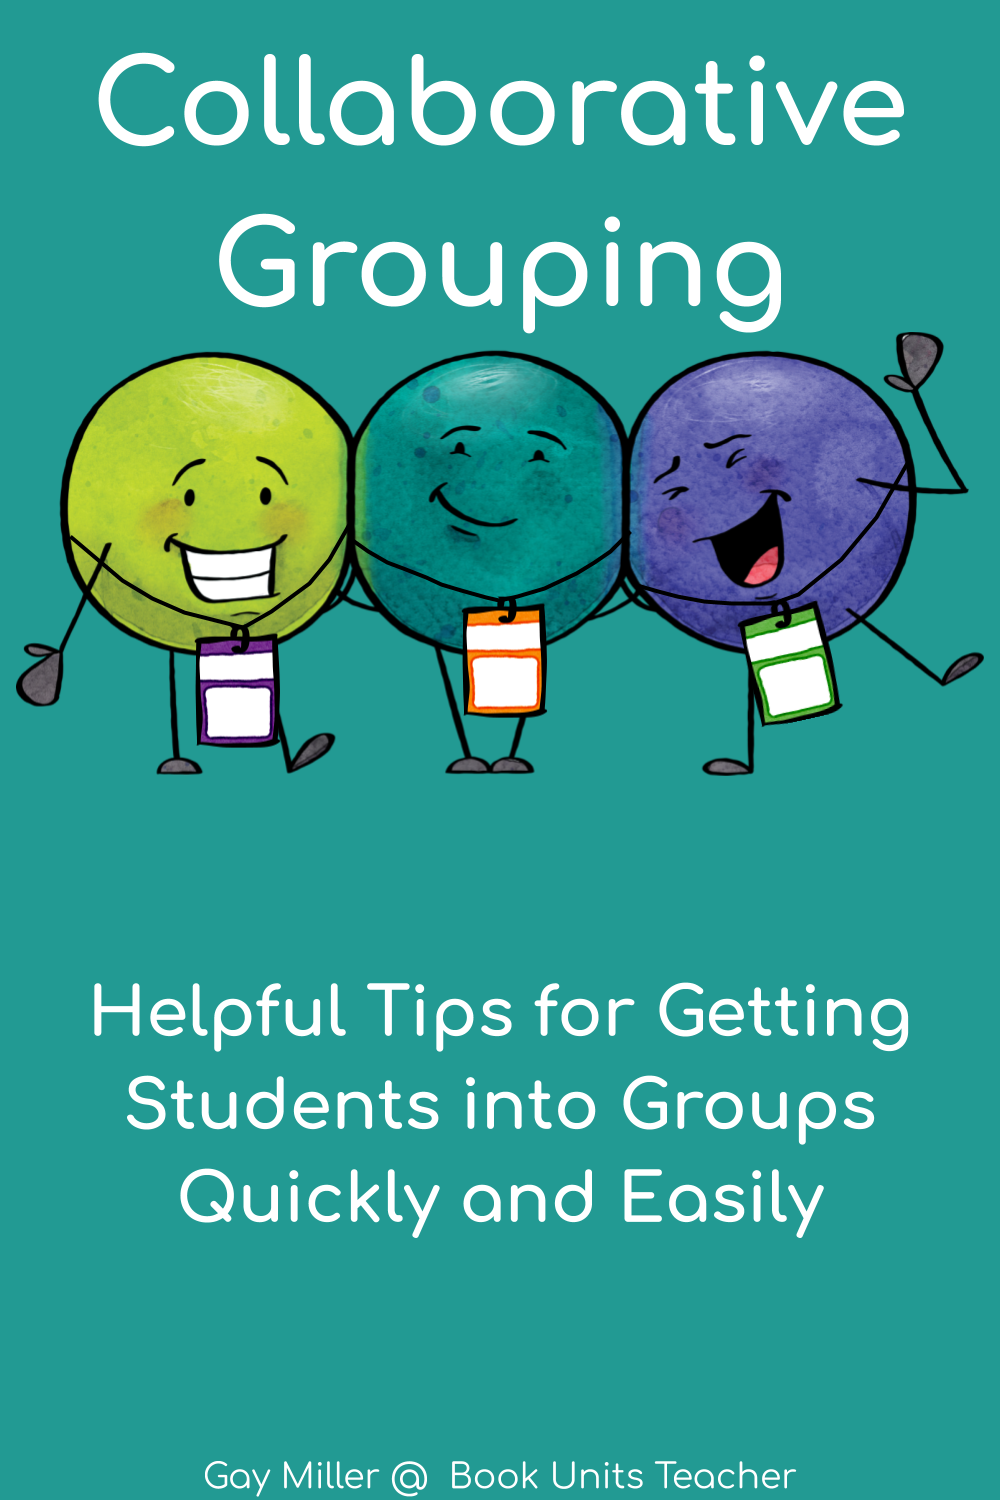 With just a few minutes of work at the beginning of the year, your students will move into collaborate groups quickly and easily.